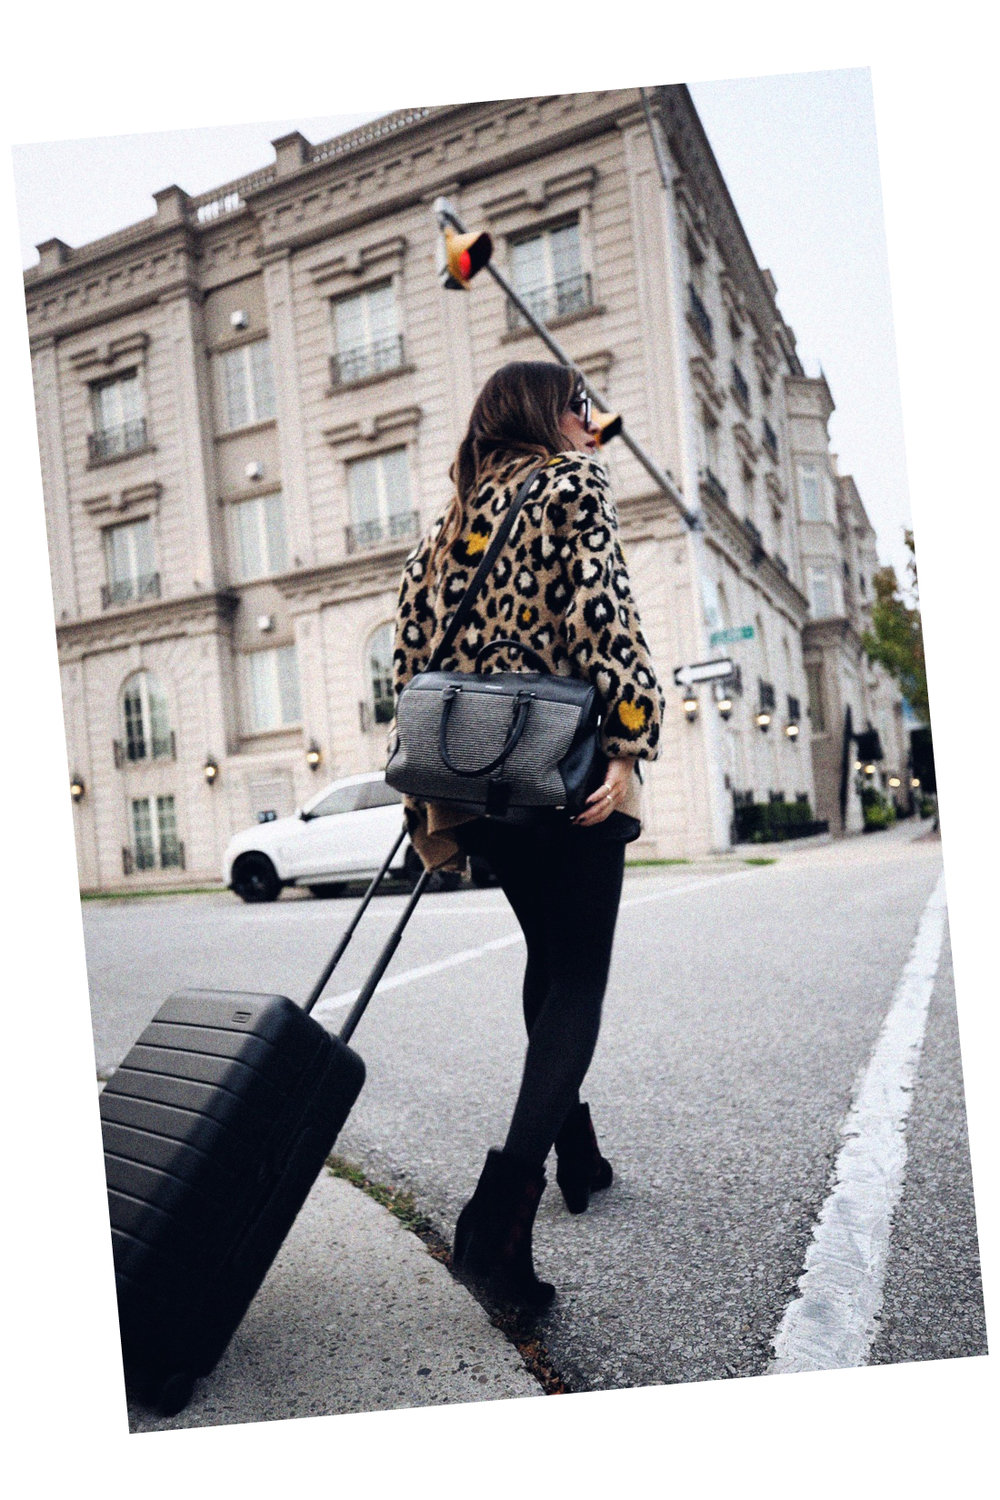 saint laurent studded duffle by hedi slimane, leopard print cardigan, striped tshirt, edie sedwick inspired, away luggage carry on  - woahstyle.com 8.jpg